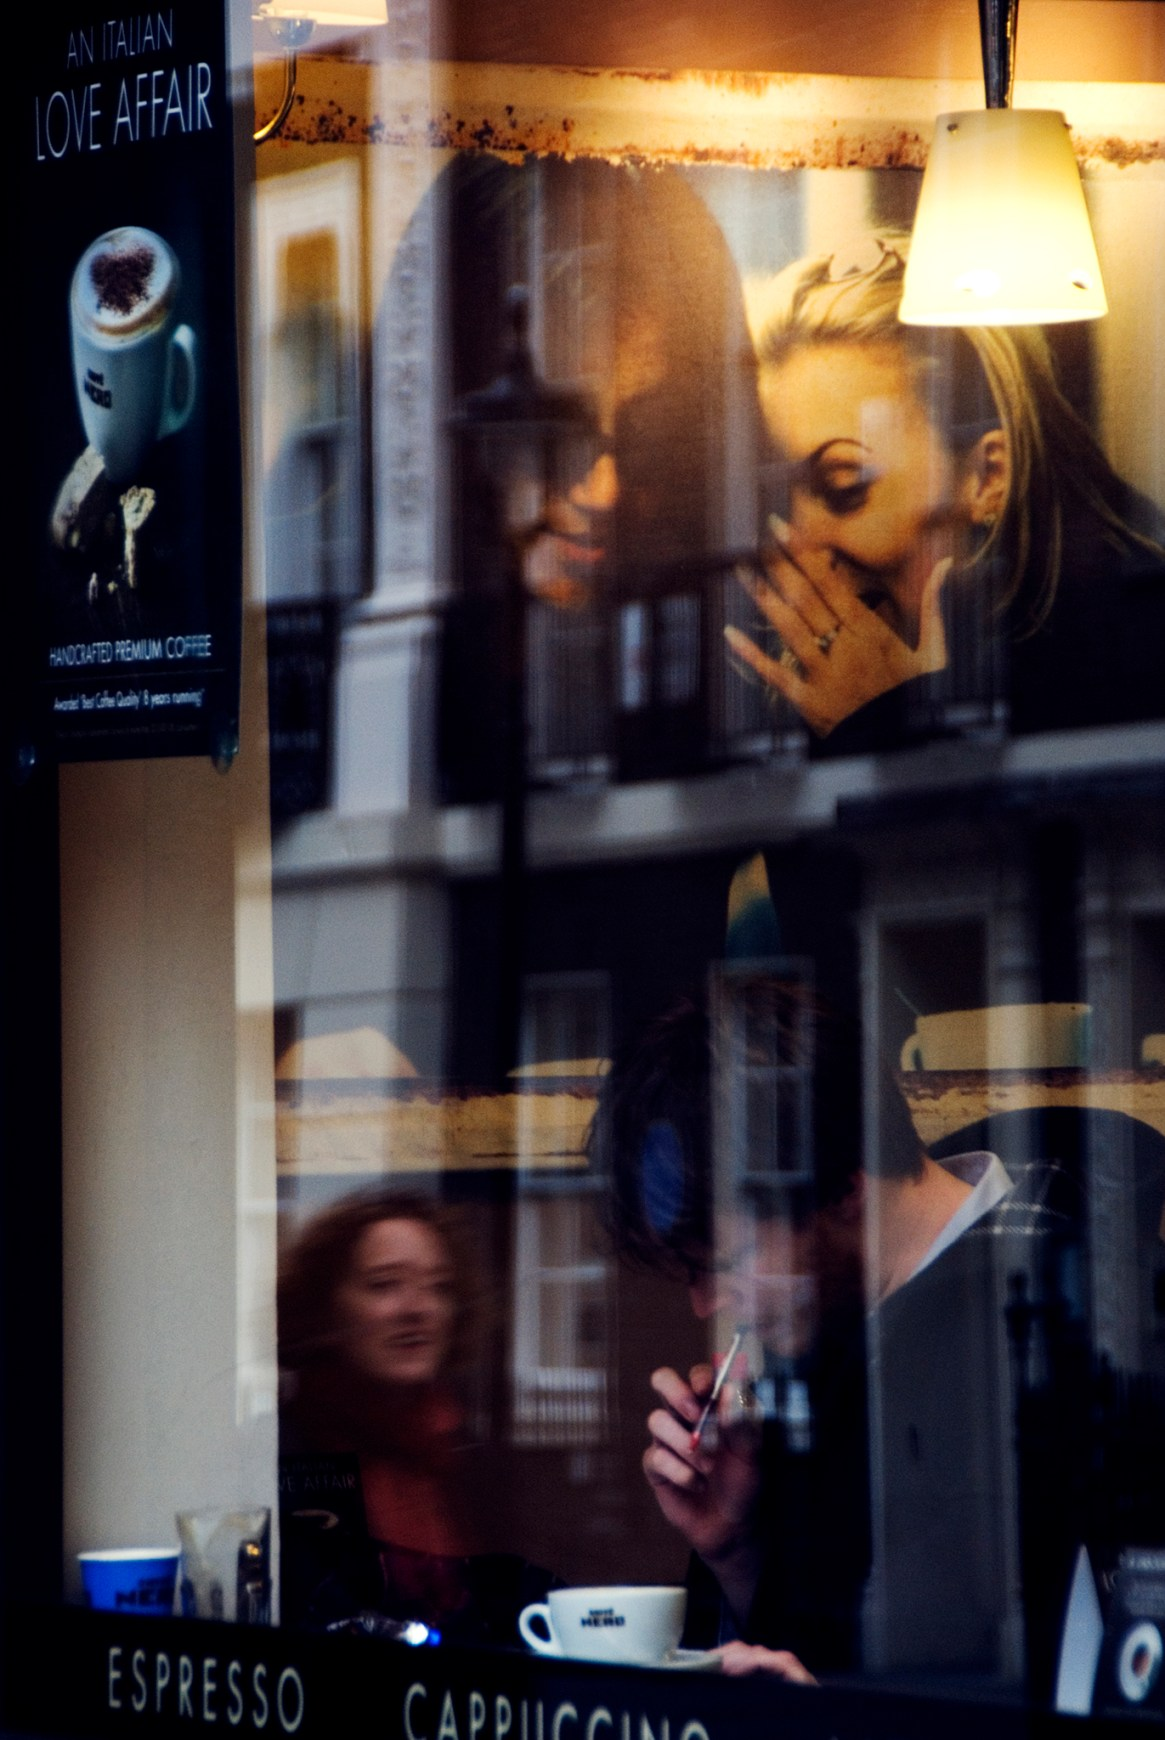 A man in a coffee shop under a sign of two whispering characters, superimposed over a reflection of a woman walking by